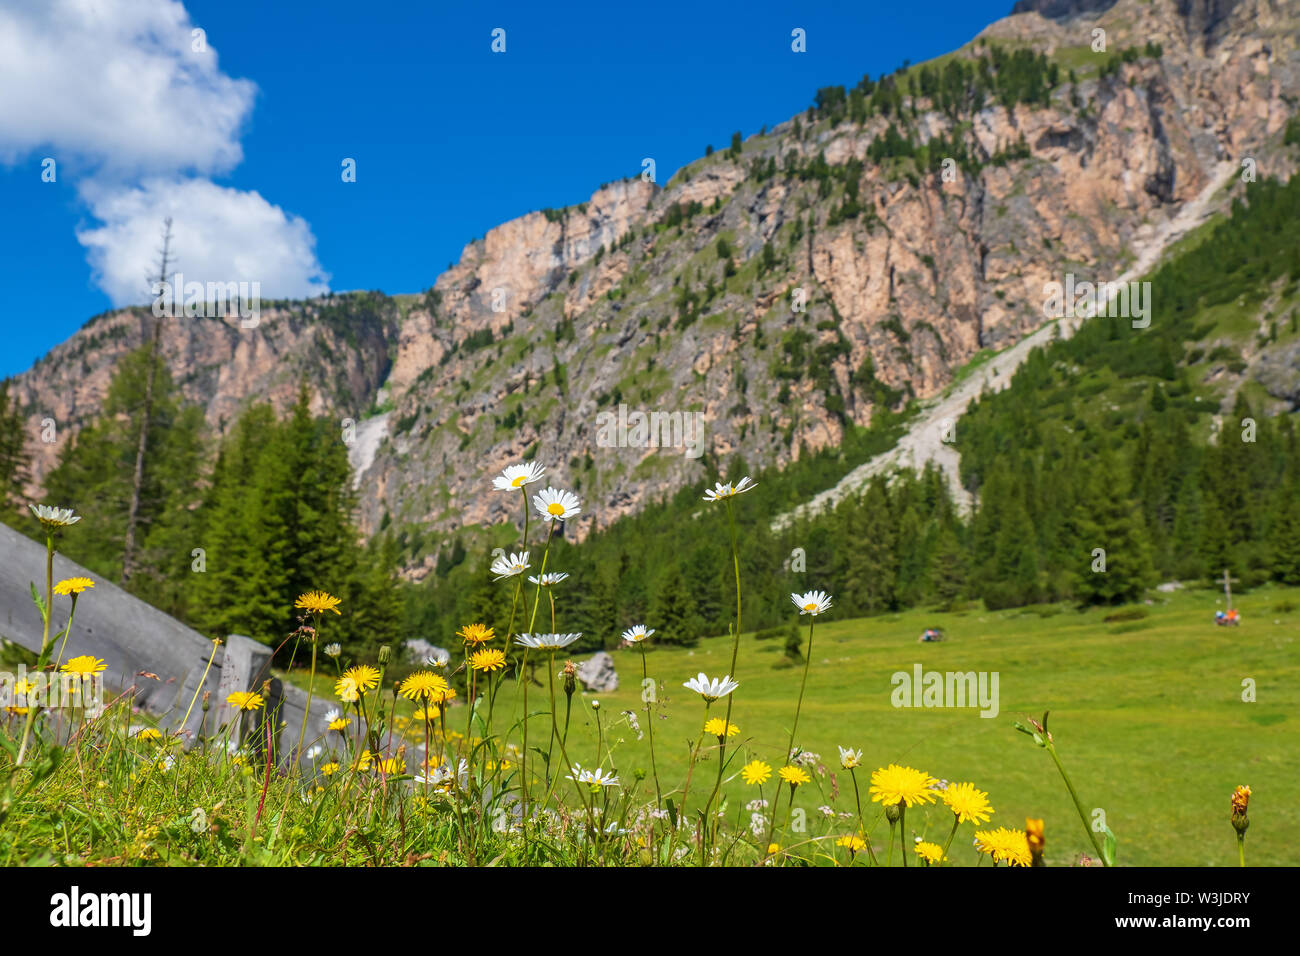 Flowering meadow flowers in an alp valley - Stock Image